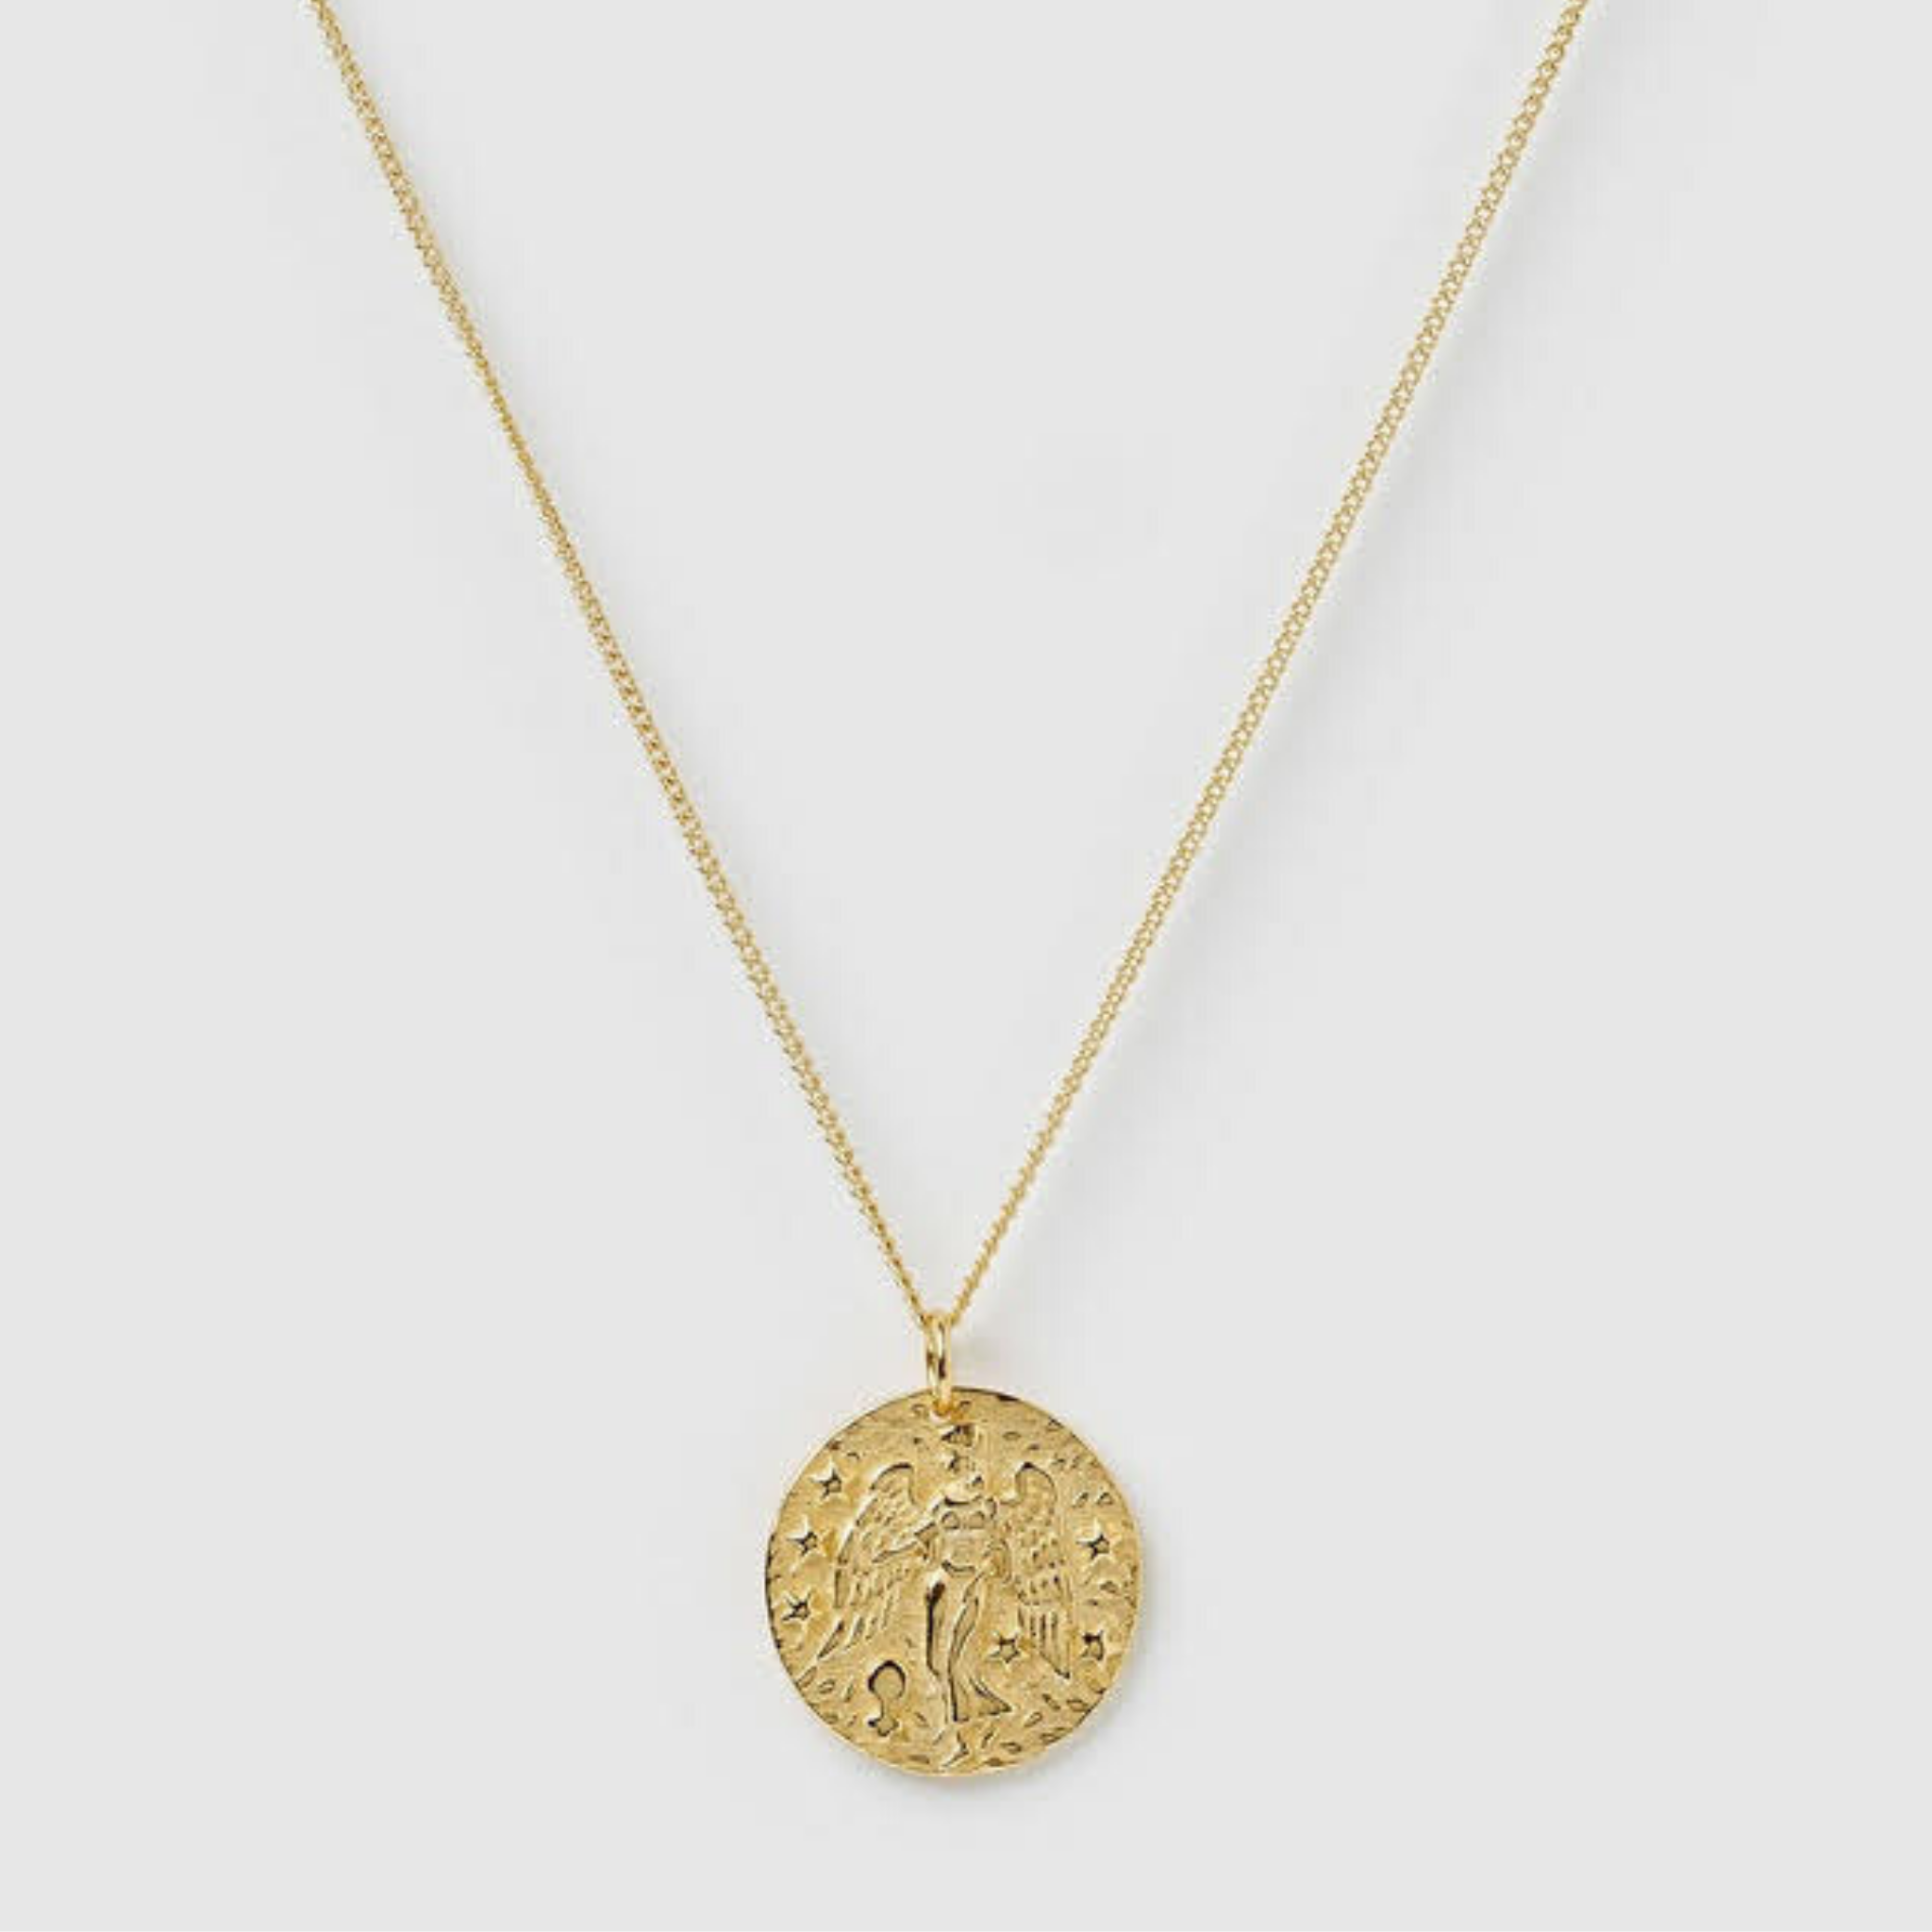 Virgo Necklace, Gold Vermeil